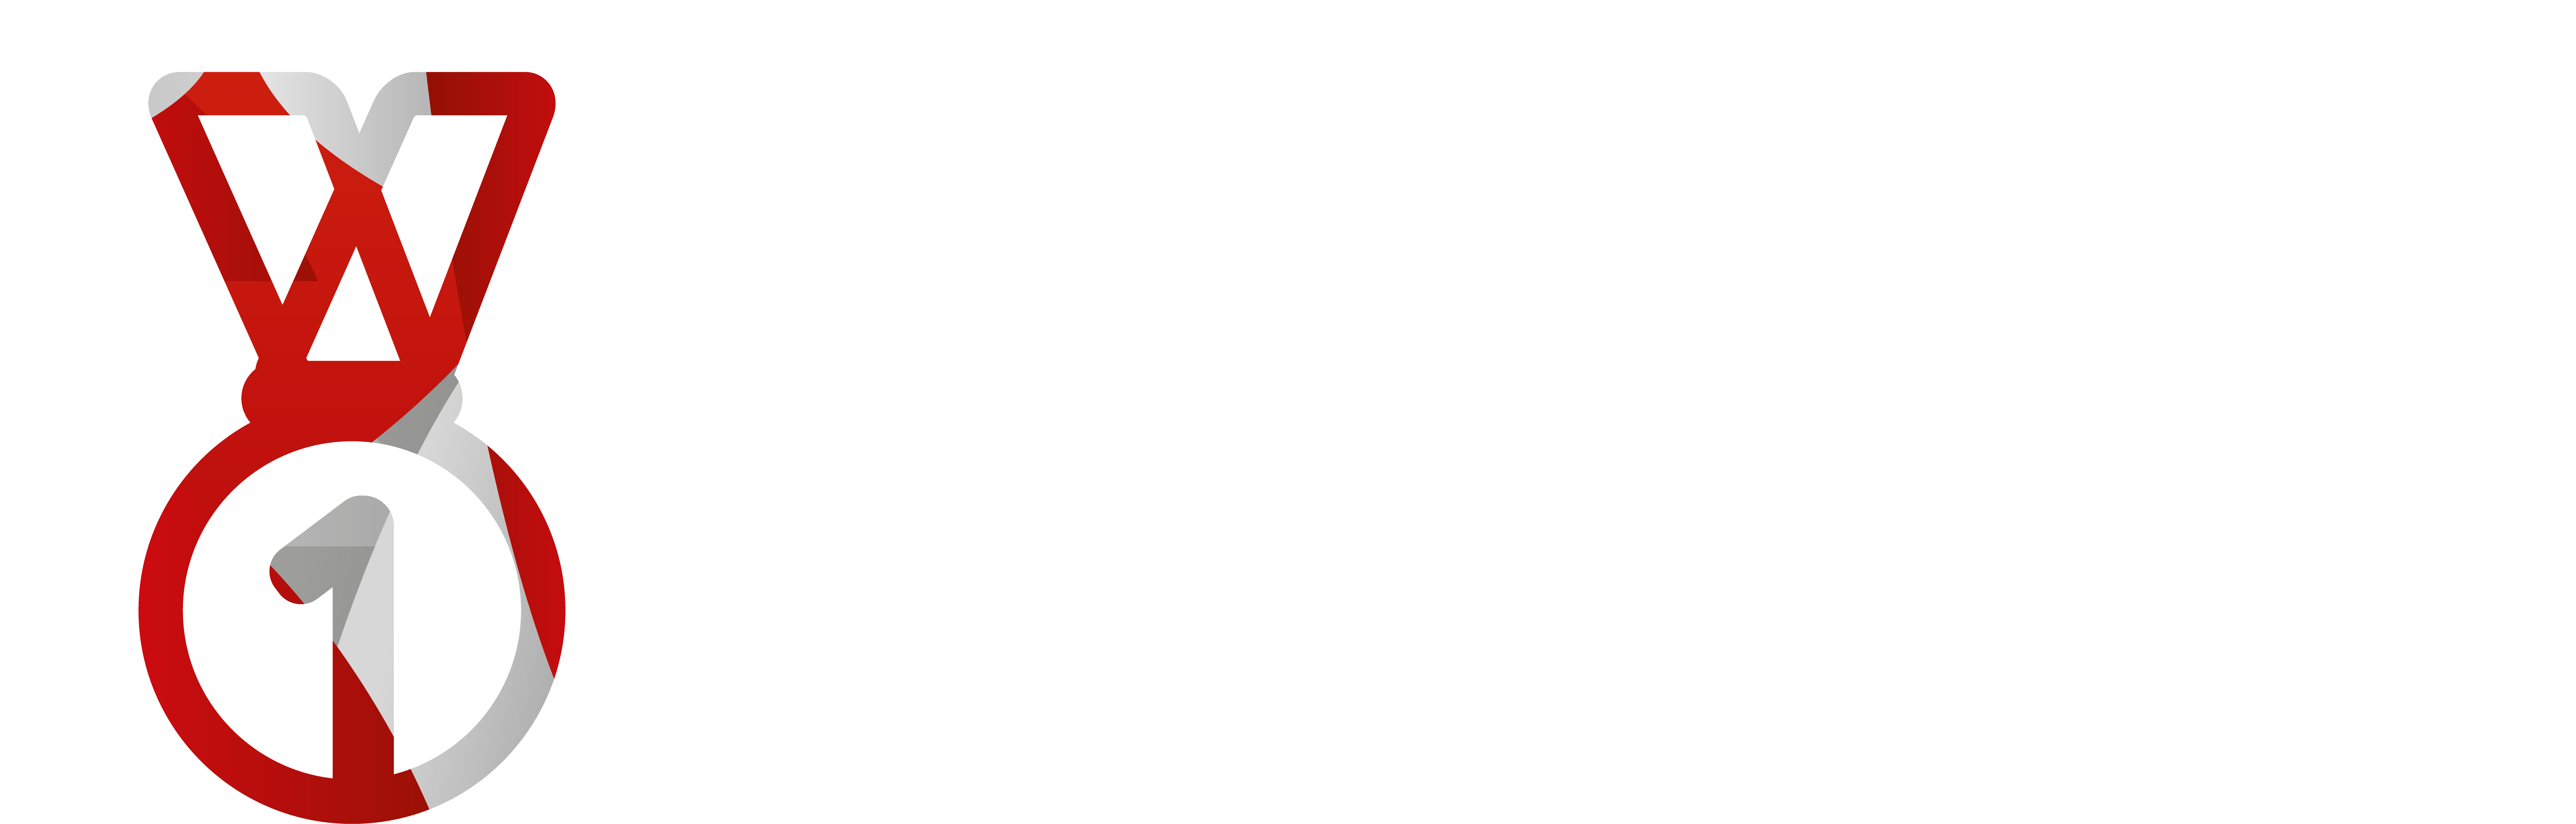 The Medalist